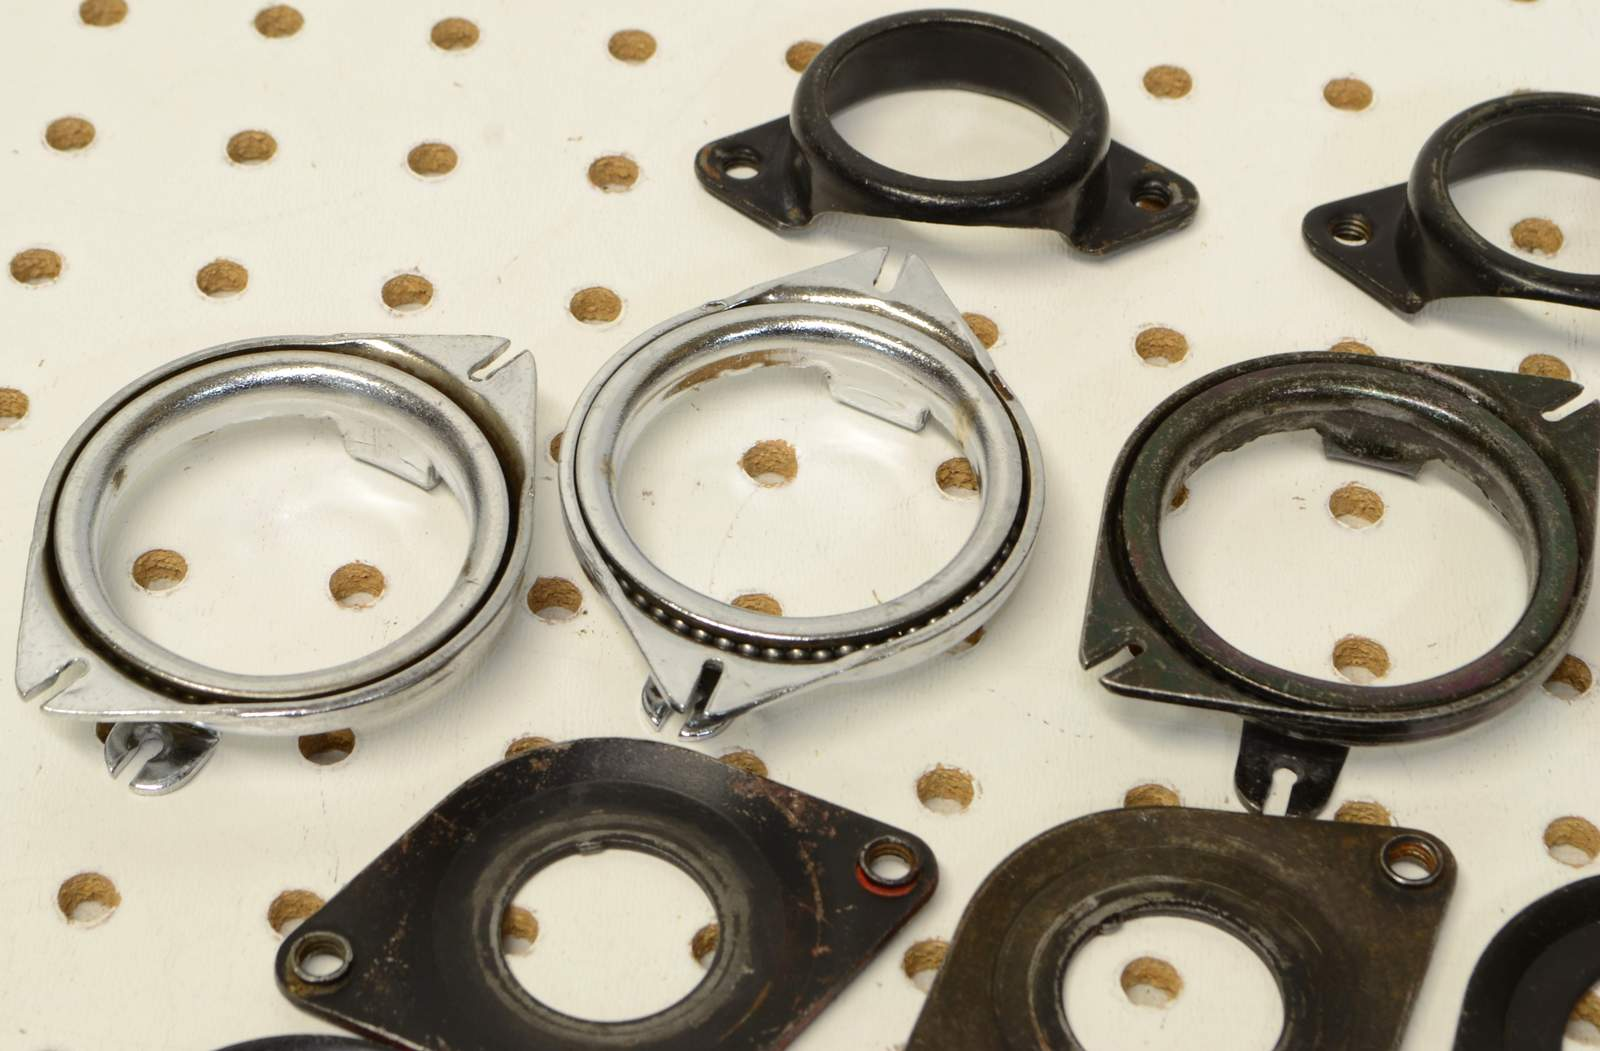 http://uploads.bmxmuseum.com/user-images/17782/sst-oryg-gyro-parts-lot....75c1023c45c.jpg